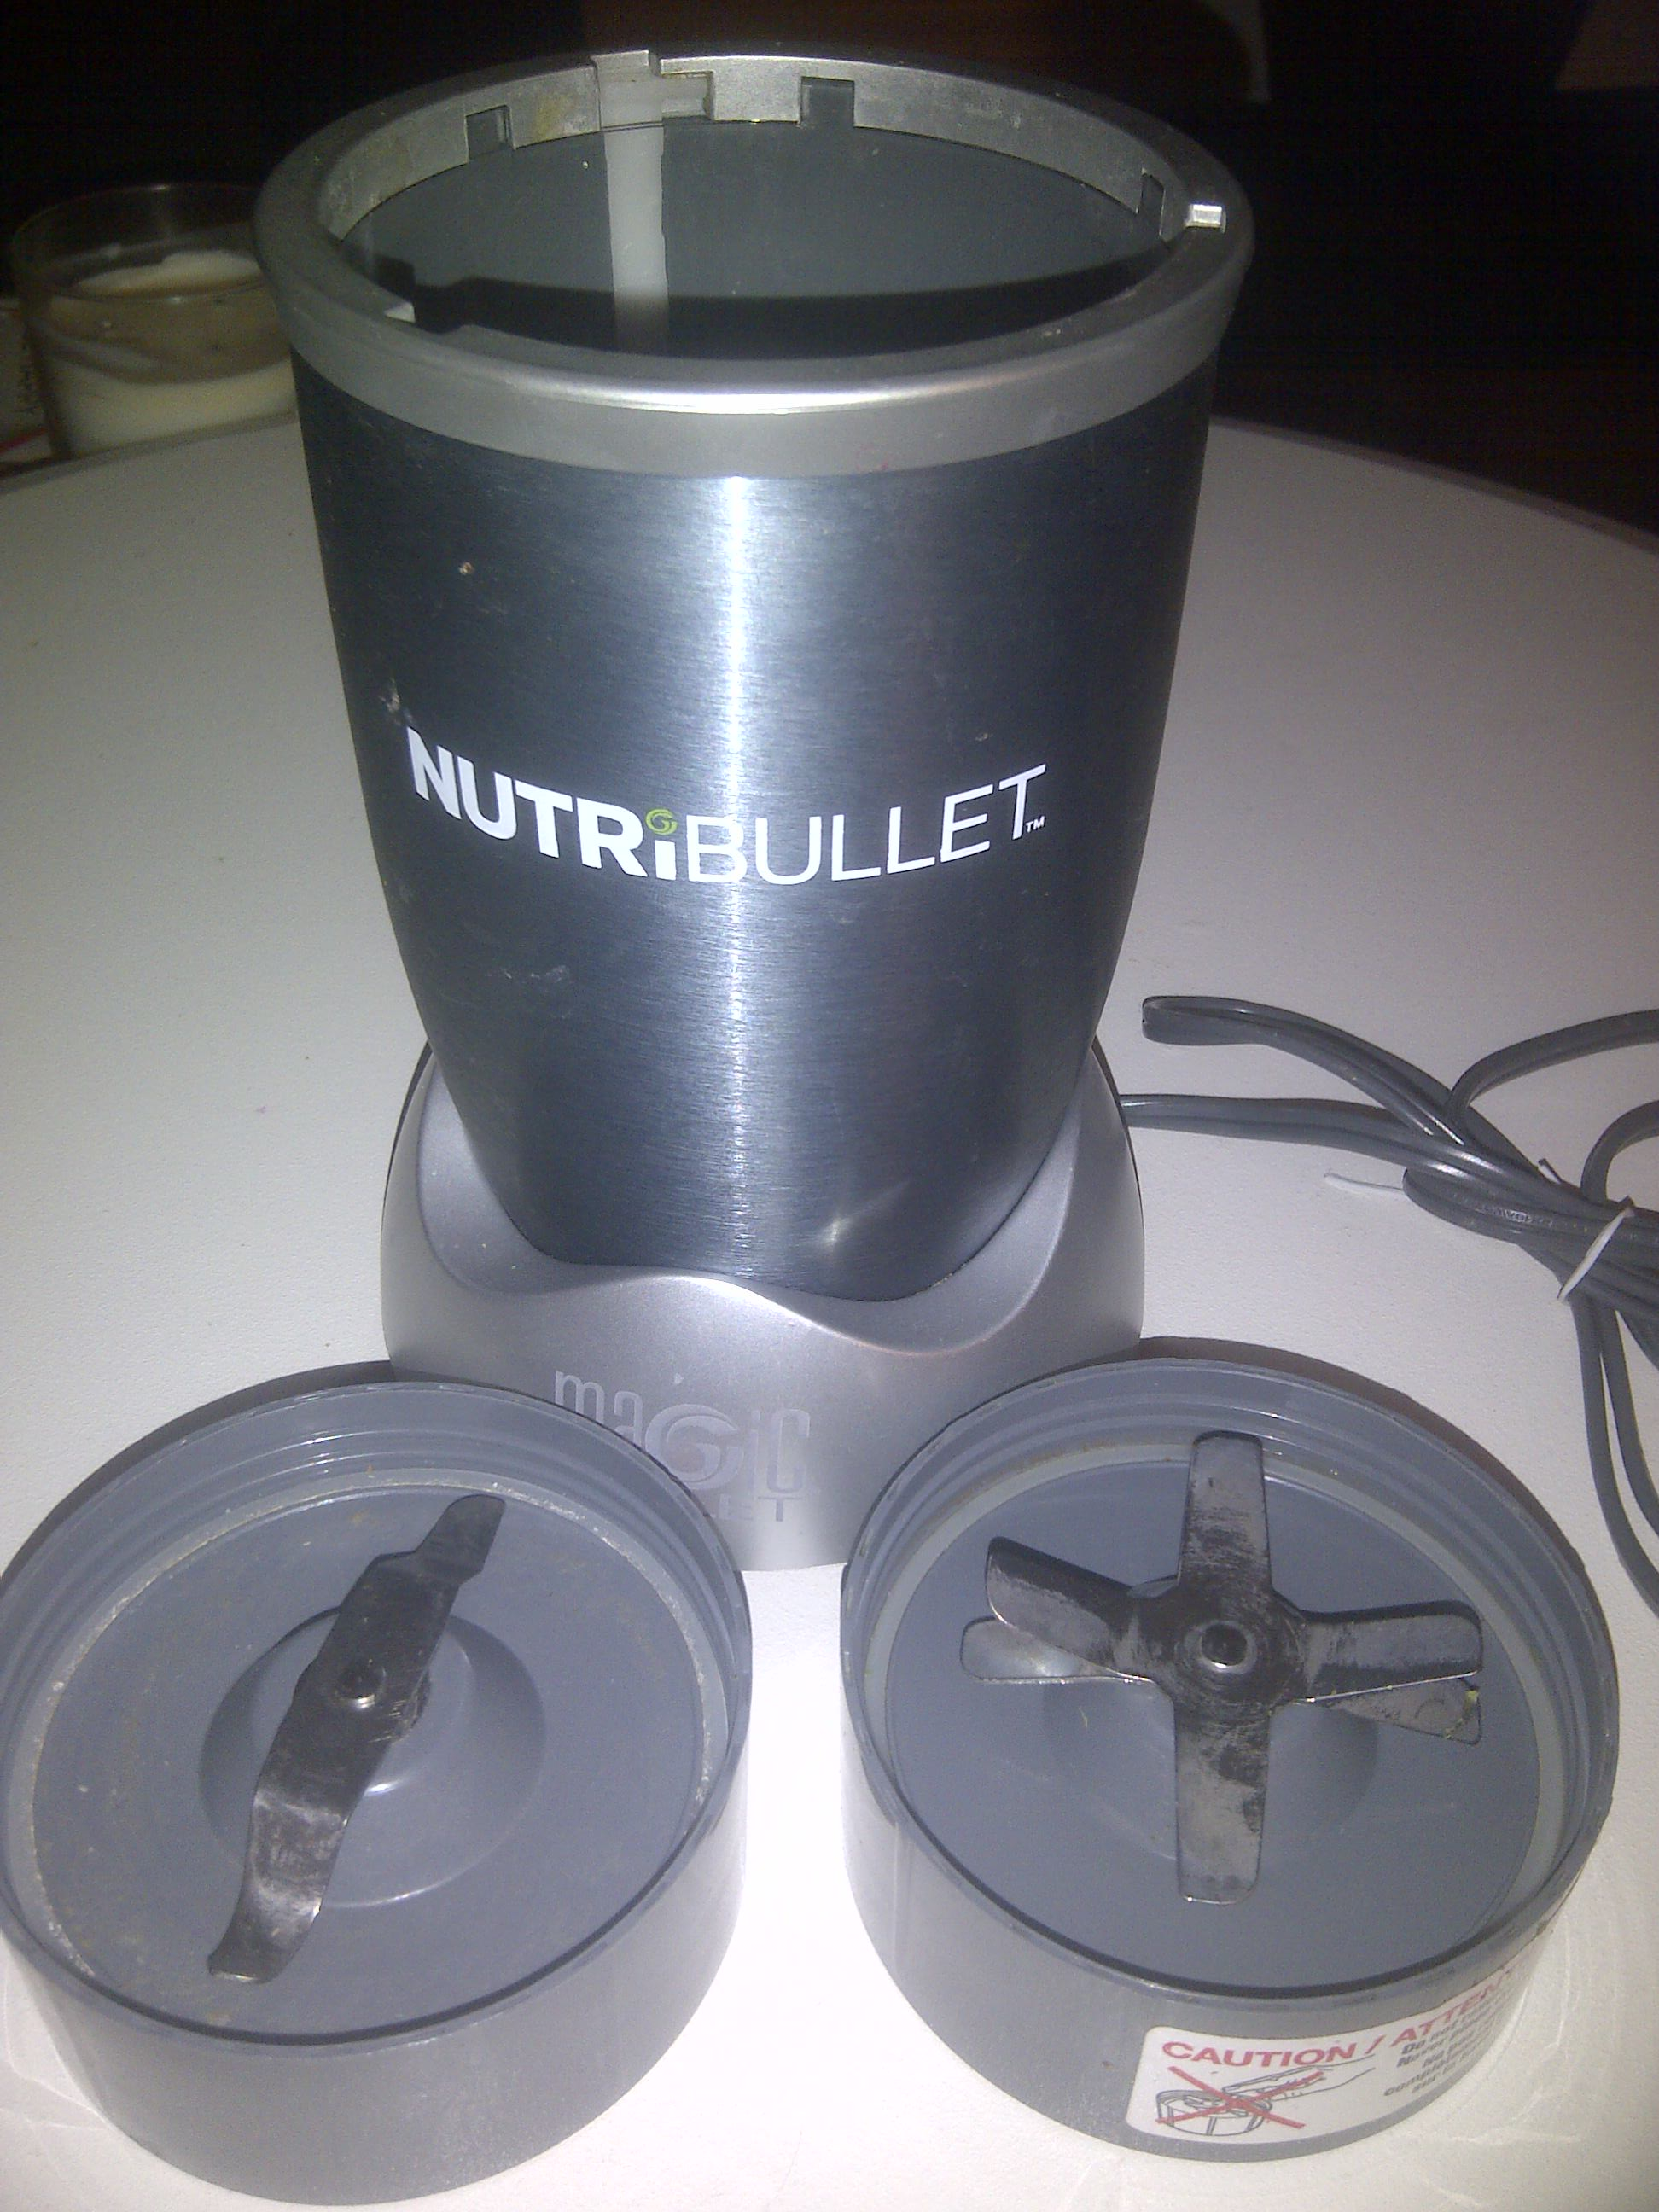 Nutribullet Superfood Nutrition Extractor The Neon Leopard